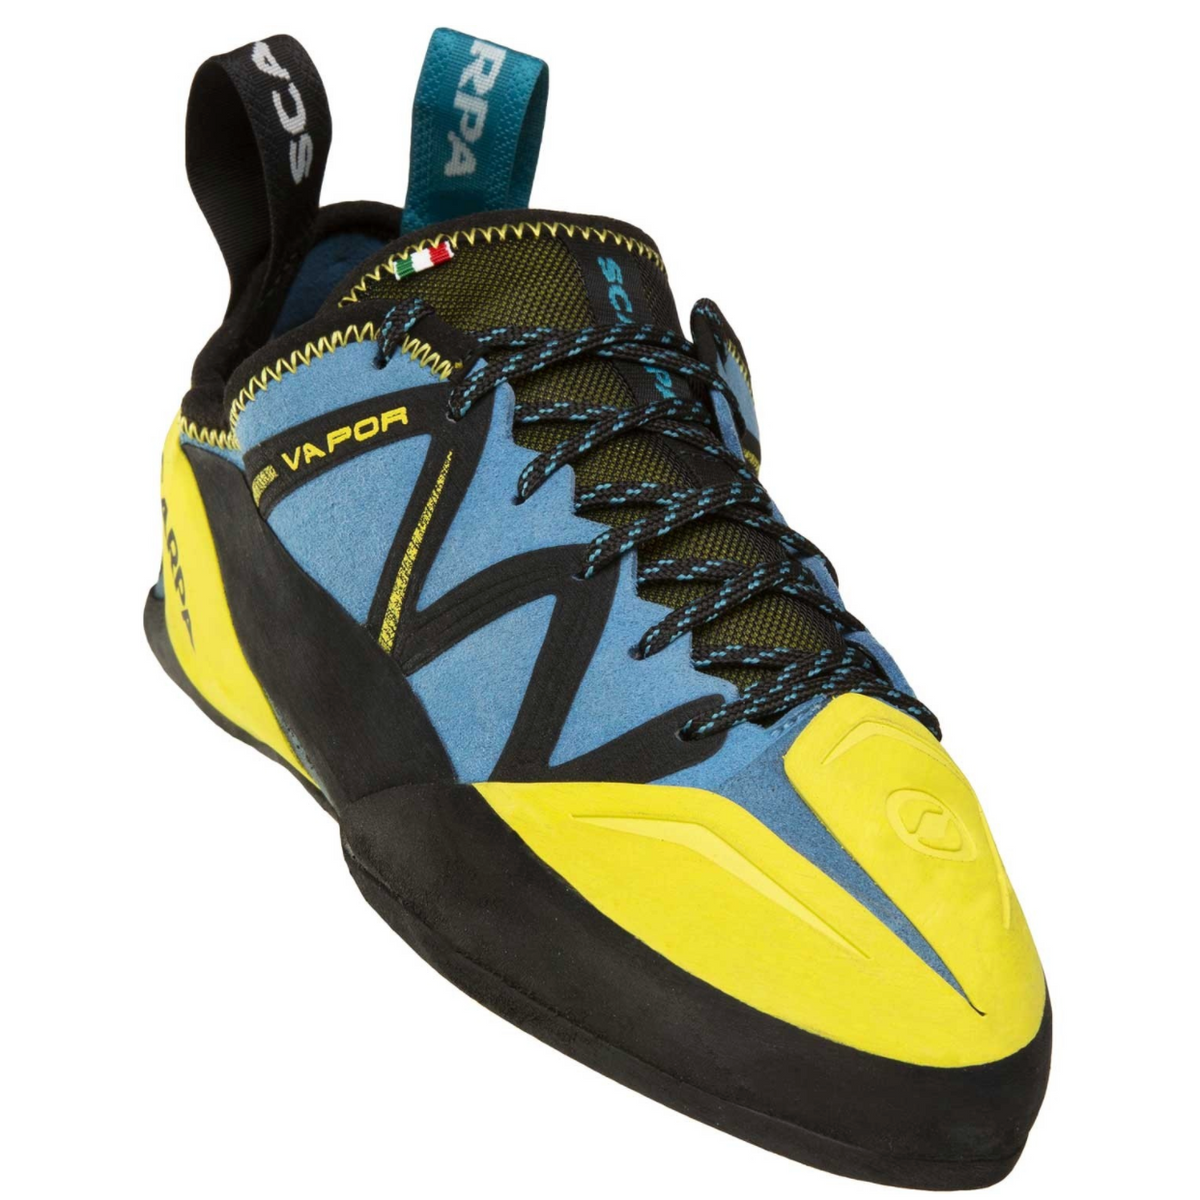 Scarpa Vapour Lace climbing shoe in blue and yellow front